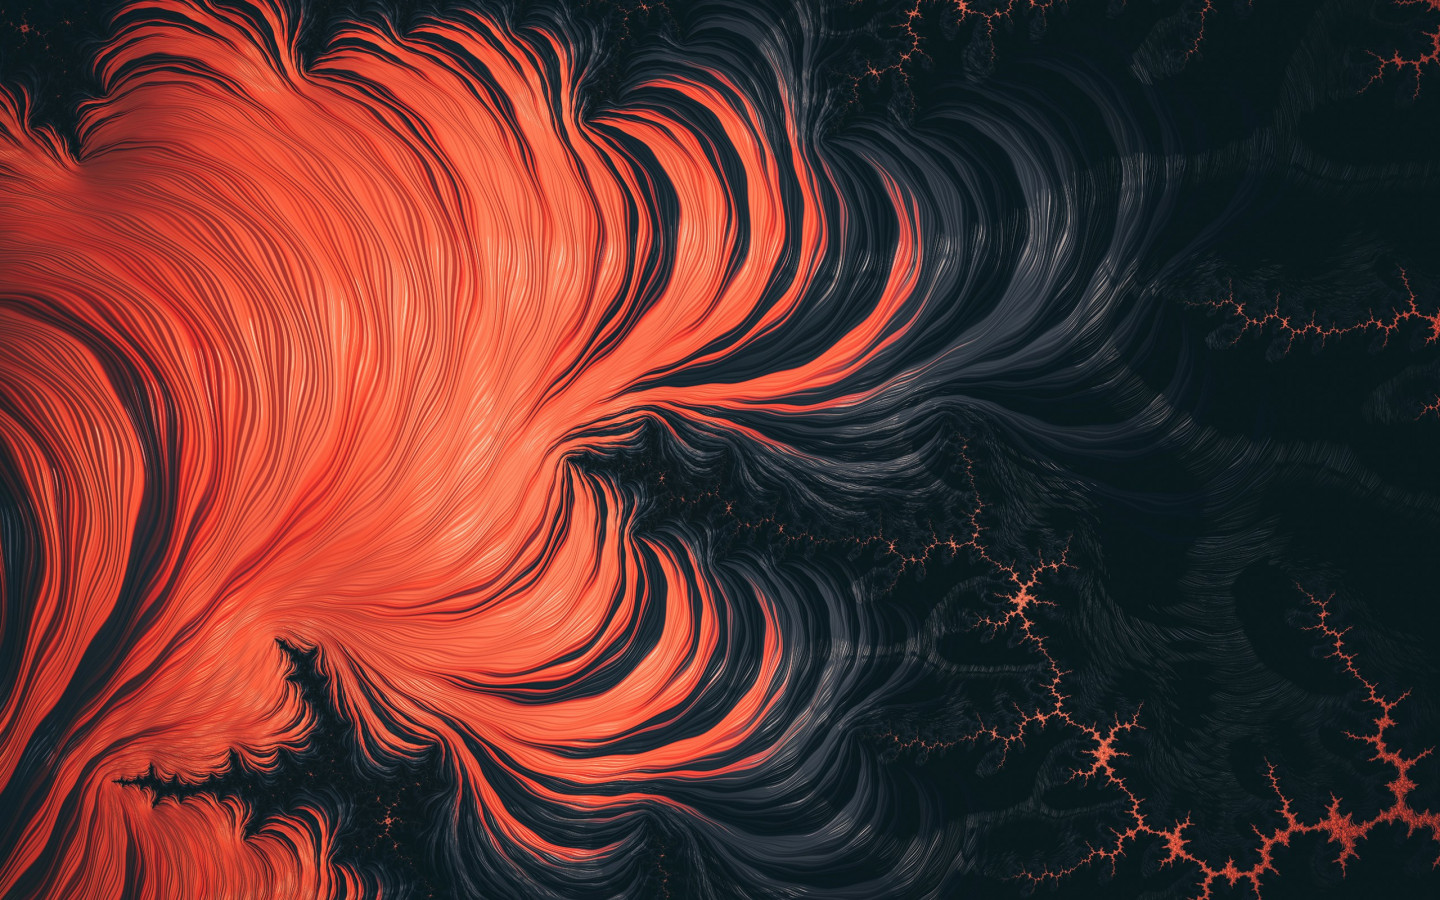 Fractal Art: Hyperventilation wallpaper 1440x900